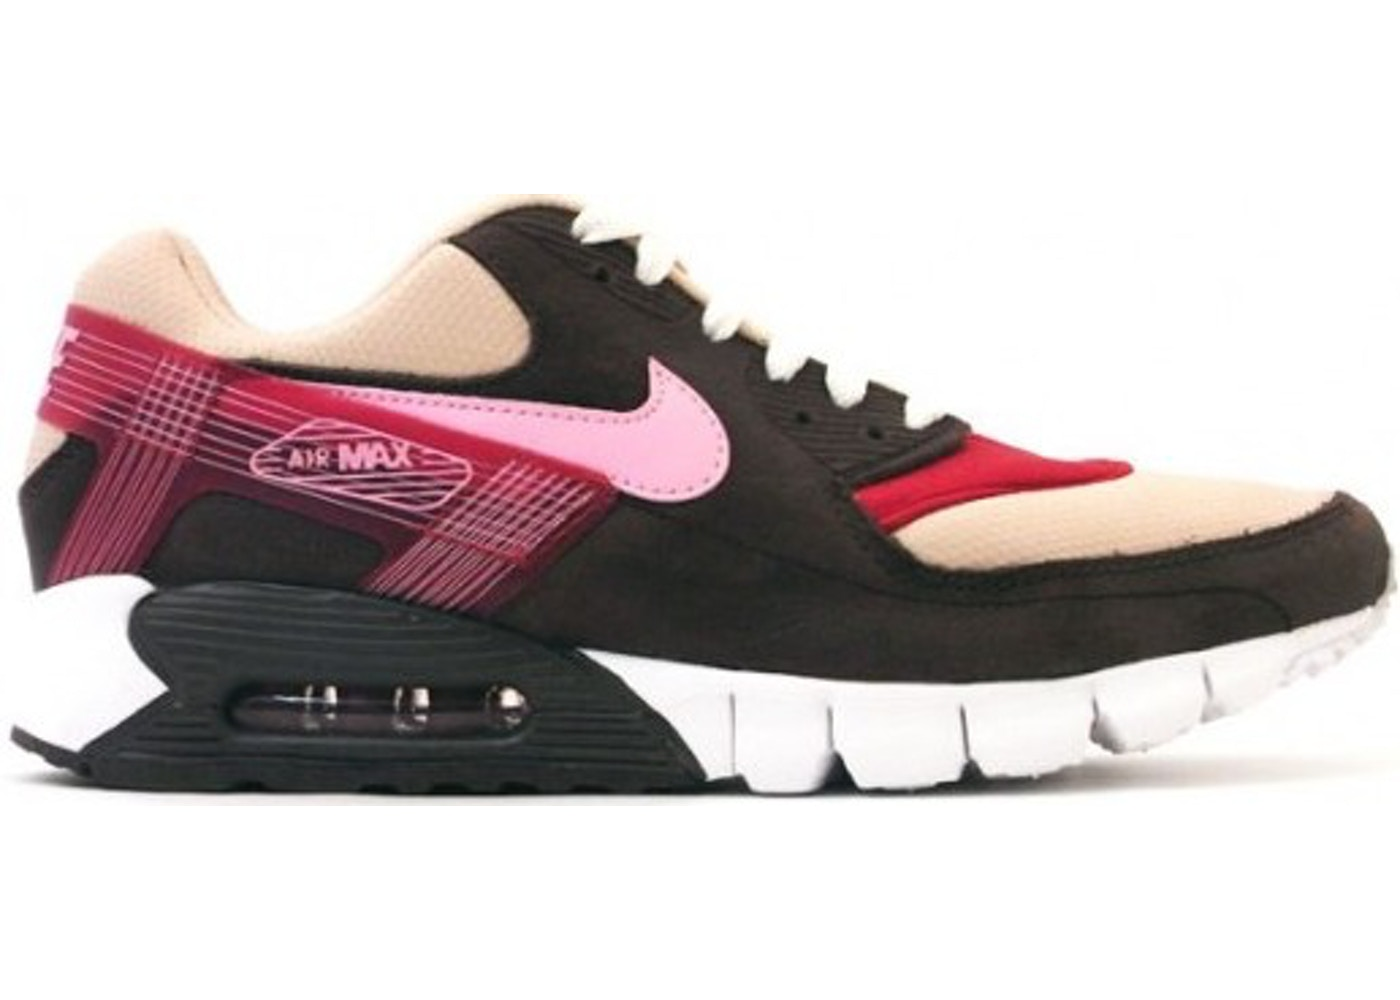 Air Max 90 Current Huarache DQM Bacon 2015 Latest Nike x ... a70f7f13bbb2